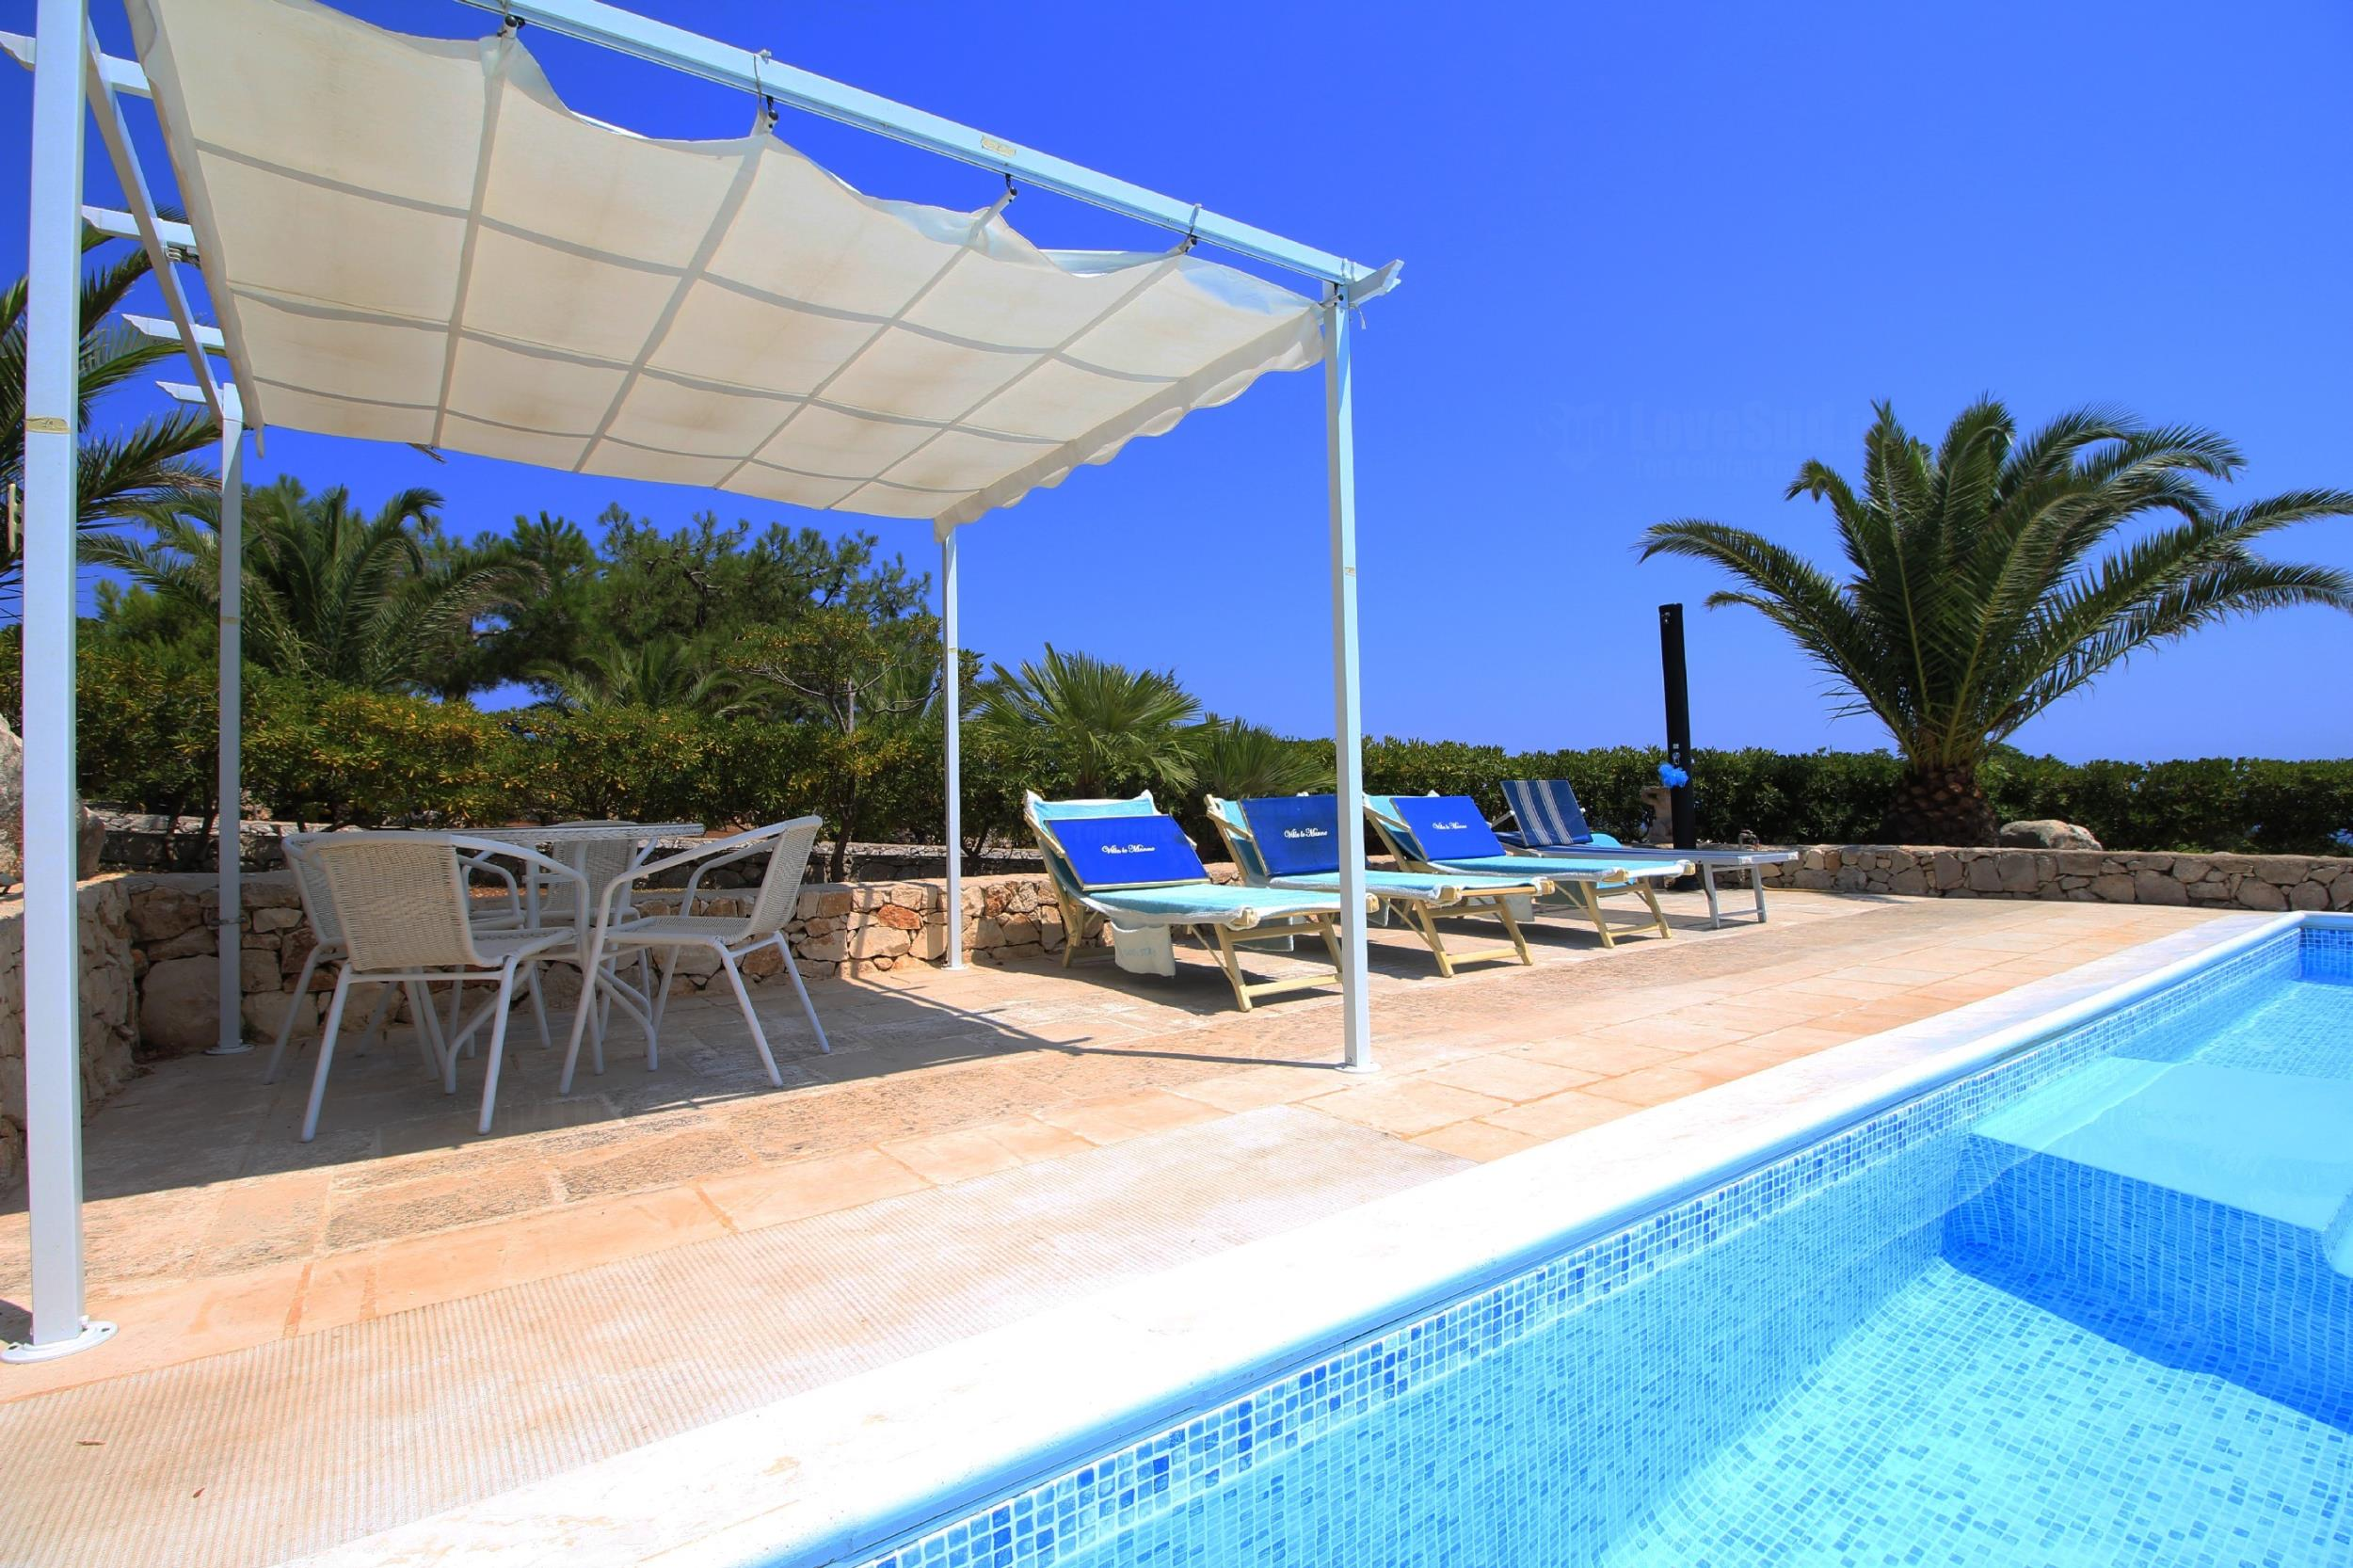 Apartment Stella Marina luxe pool home photo 22514655